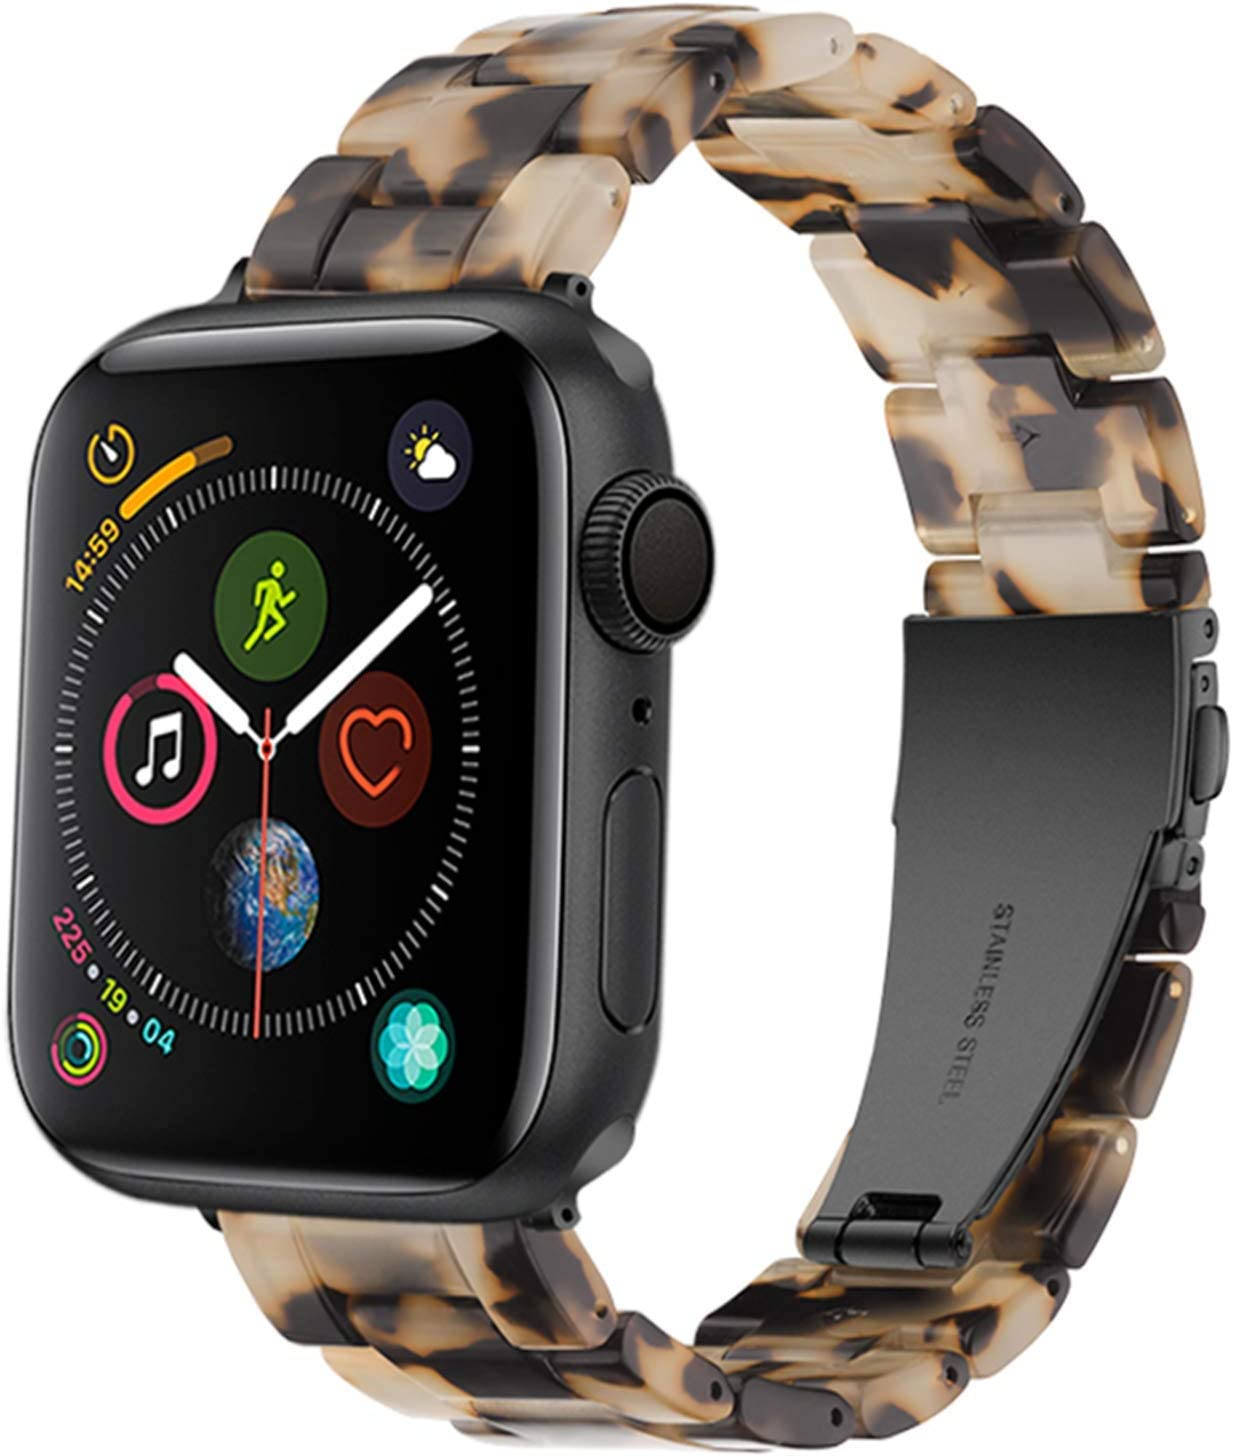 Light Apple Watch Band - Fashion Resin iWatch Band Bracelet Compatible with Copper Stainless Steel Buckle for Apple Watch Series SE Series 6 Series 5 Series 4 Series 3 Series 2 Series1 (Tortoise Stone Flower, 42mm/44mm)